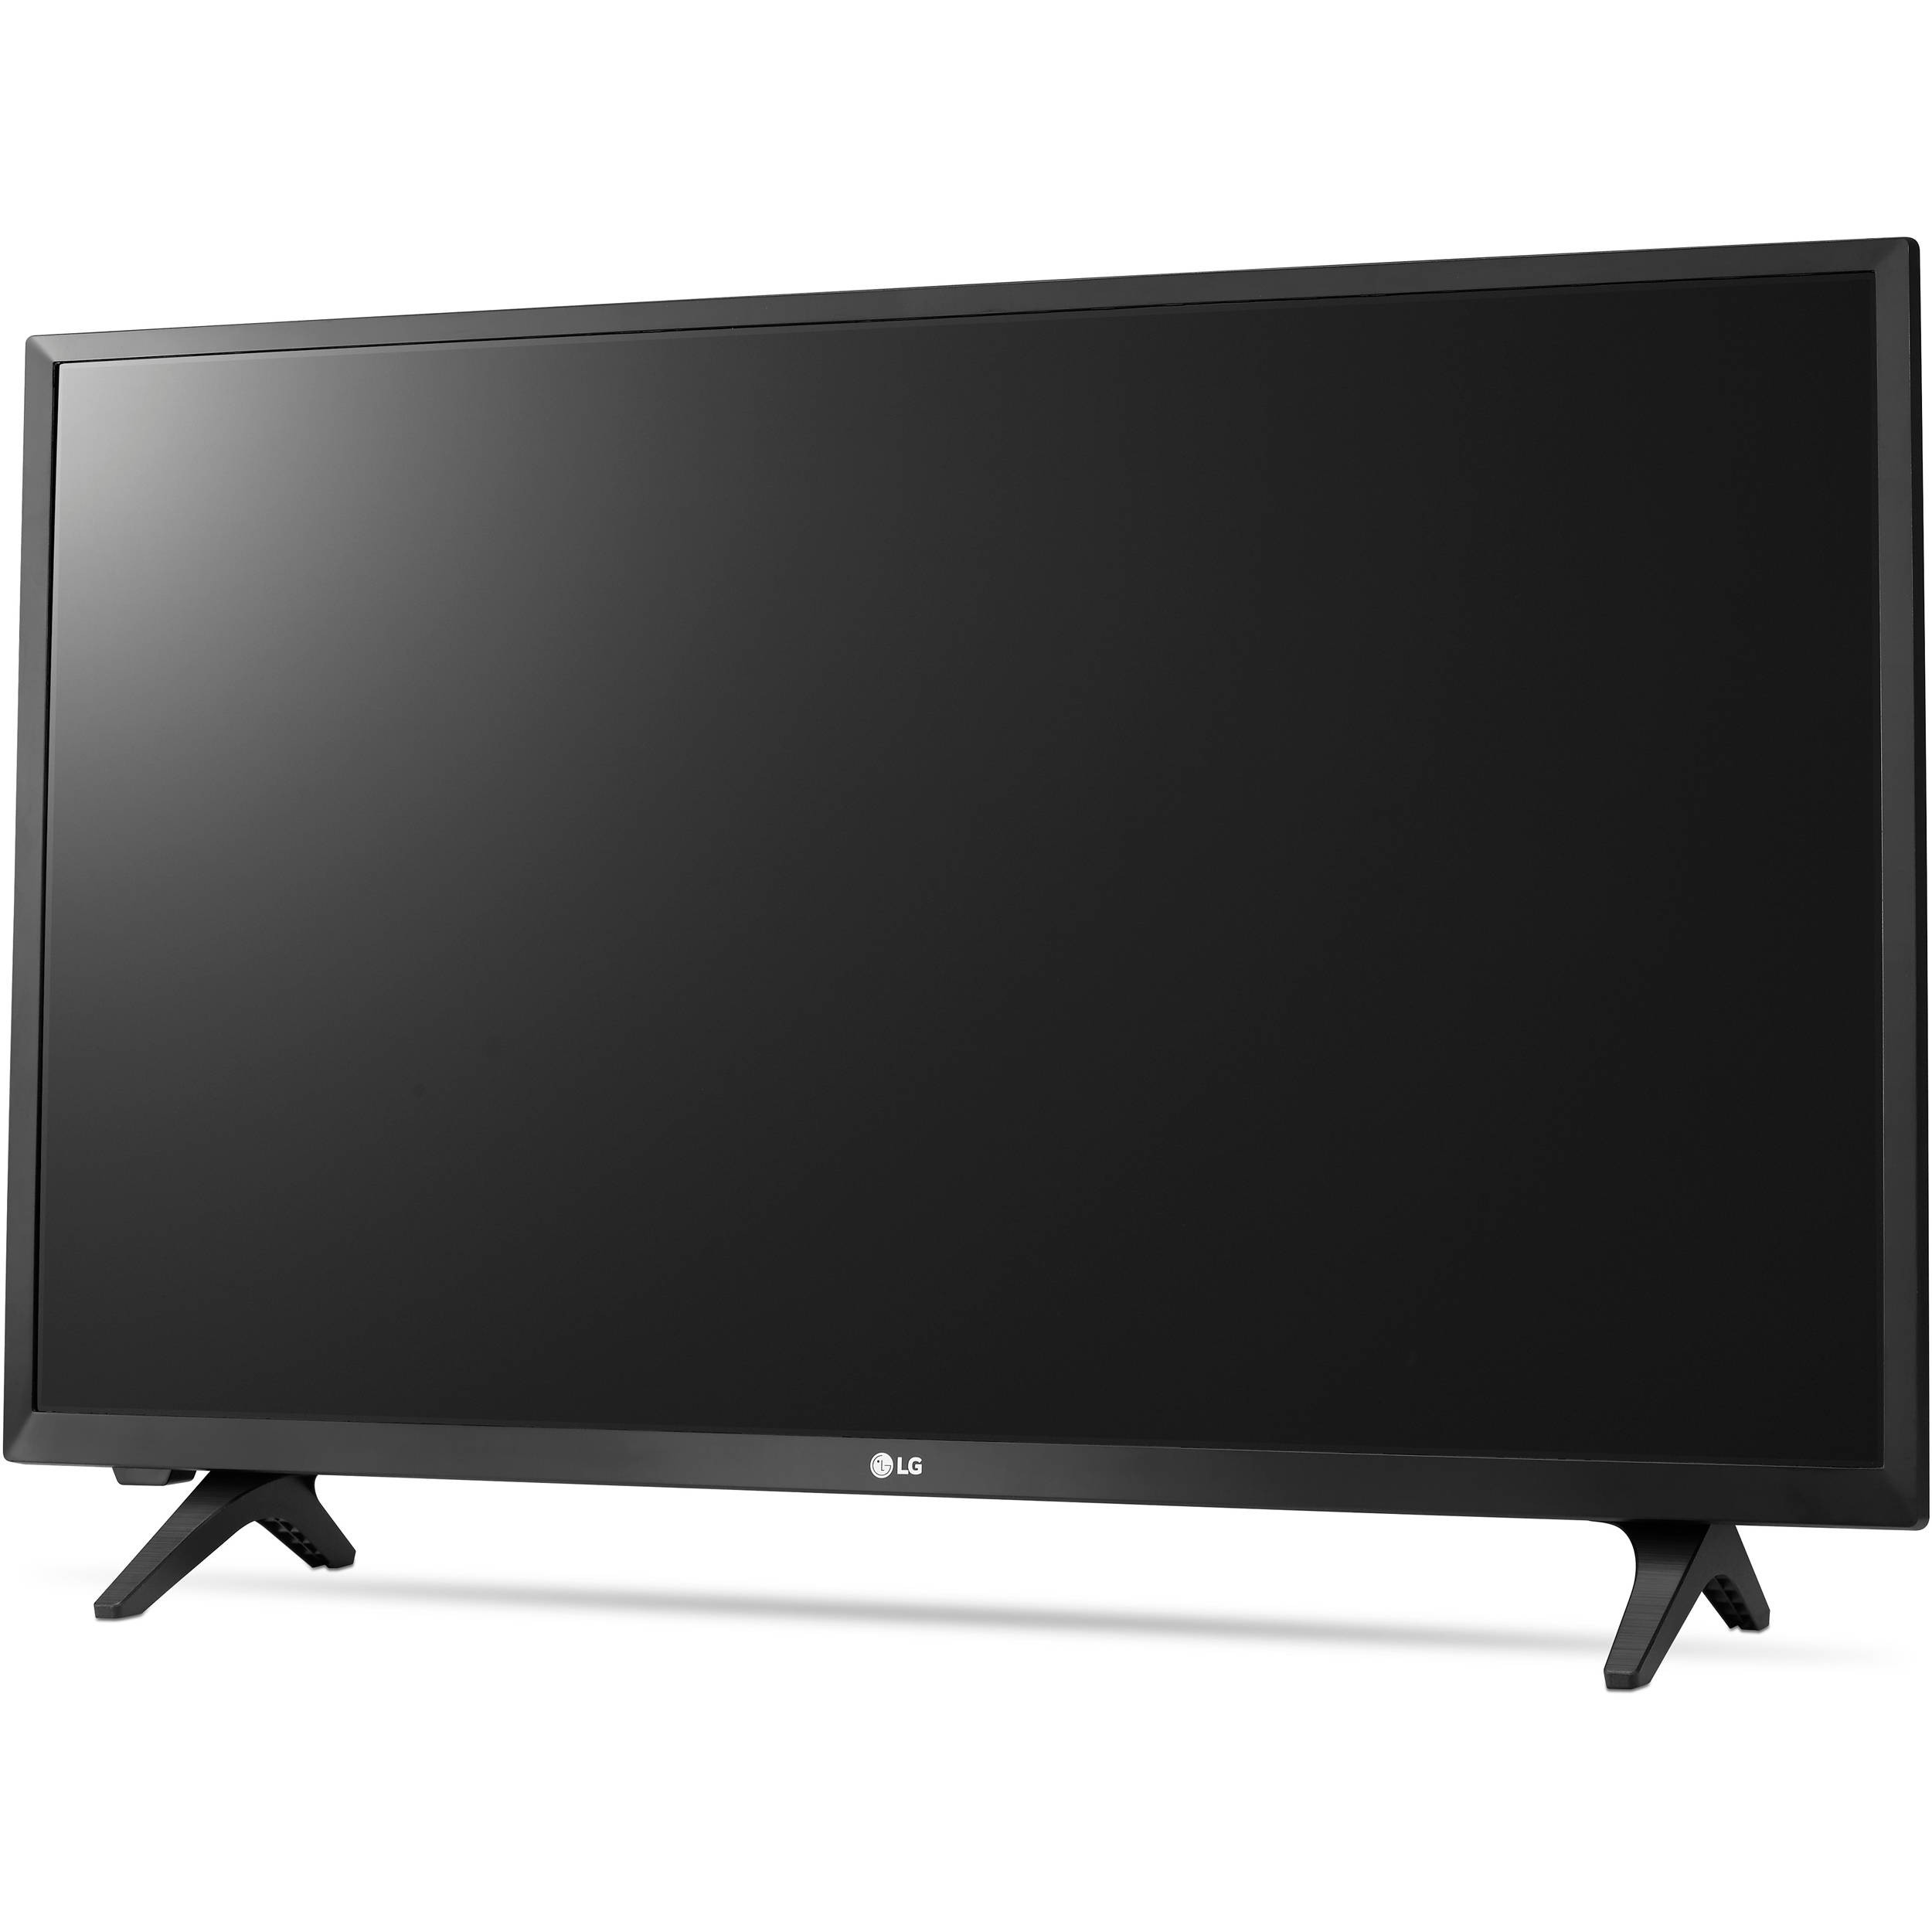 "Lg 32 Smart Tv Magnífica Lg Lj550b Series 32"" Class Hd Smart Led Tv 32lj550b B&h Of 48  Arriba Lg 32 Smart Tv"